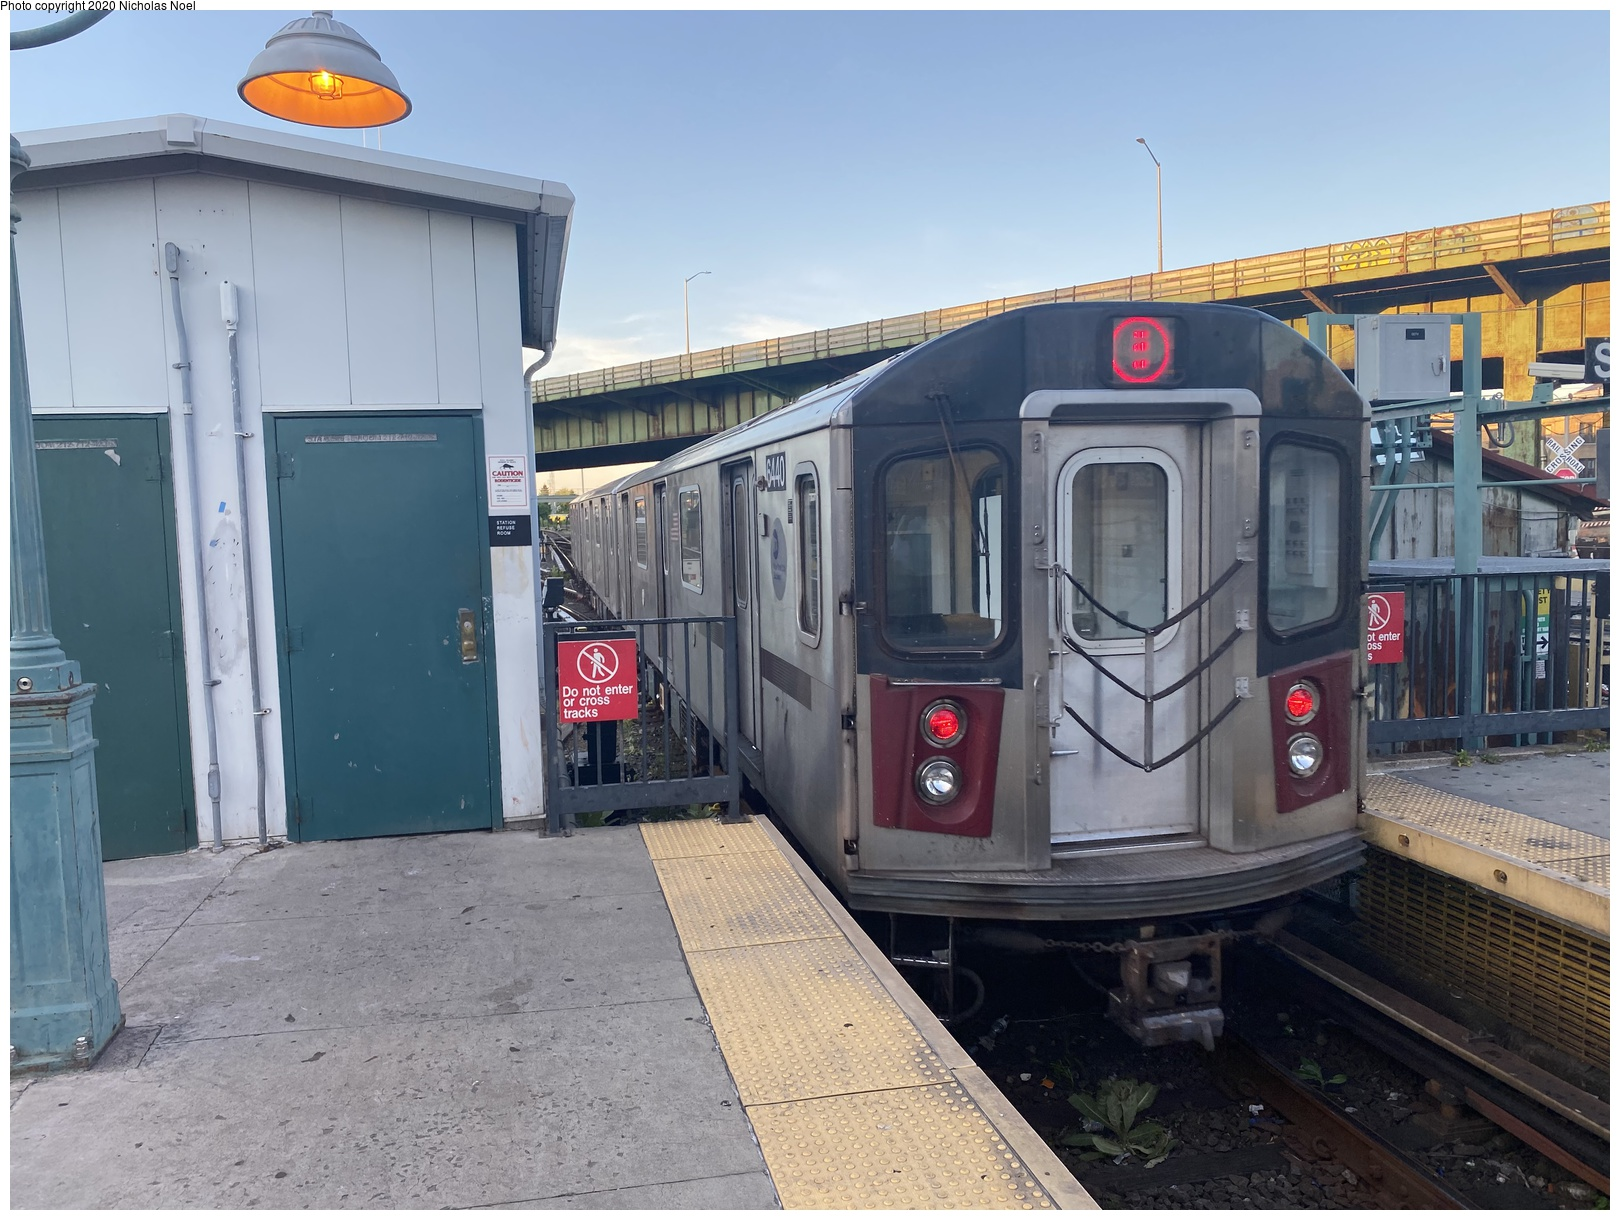 (190k, 1044x727)<br><b>Country:</b> United States<br><b>City:</b> New York<br><b>System:</b> New York City Transit<br><b>Line:</b> BMT Nassau Street/Jamaica Line<br><b>Location:</b> Broadway/East New York (Broadway Junction) <br><b>Route:</b> Work Service<br><b>Car:</b> BMT Elevated Gate Car  <br><b>Photo by:</b> Joel Shanus<br><b>Notes:</b> BU 1300 series Gate cars with flat car in middle in work service, circa 1954.<br><b>Viewed (this week/total):</b> 1 / 2056